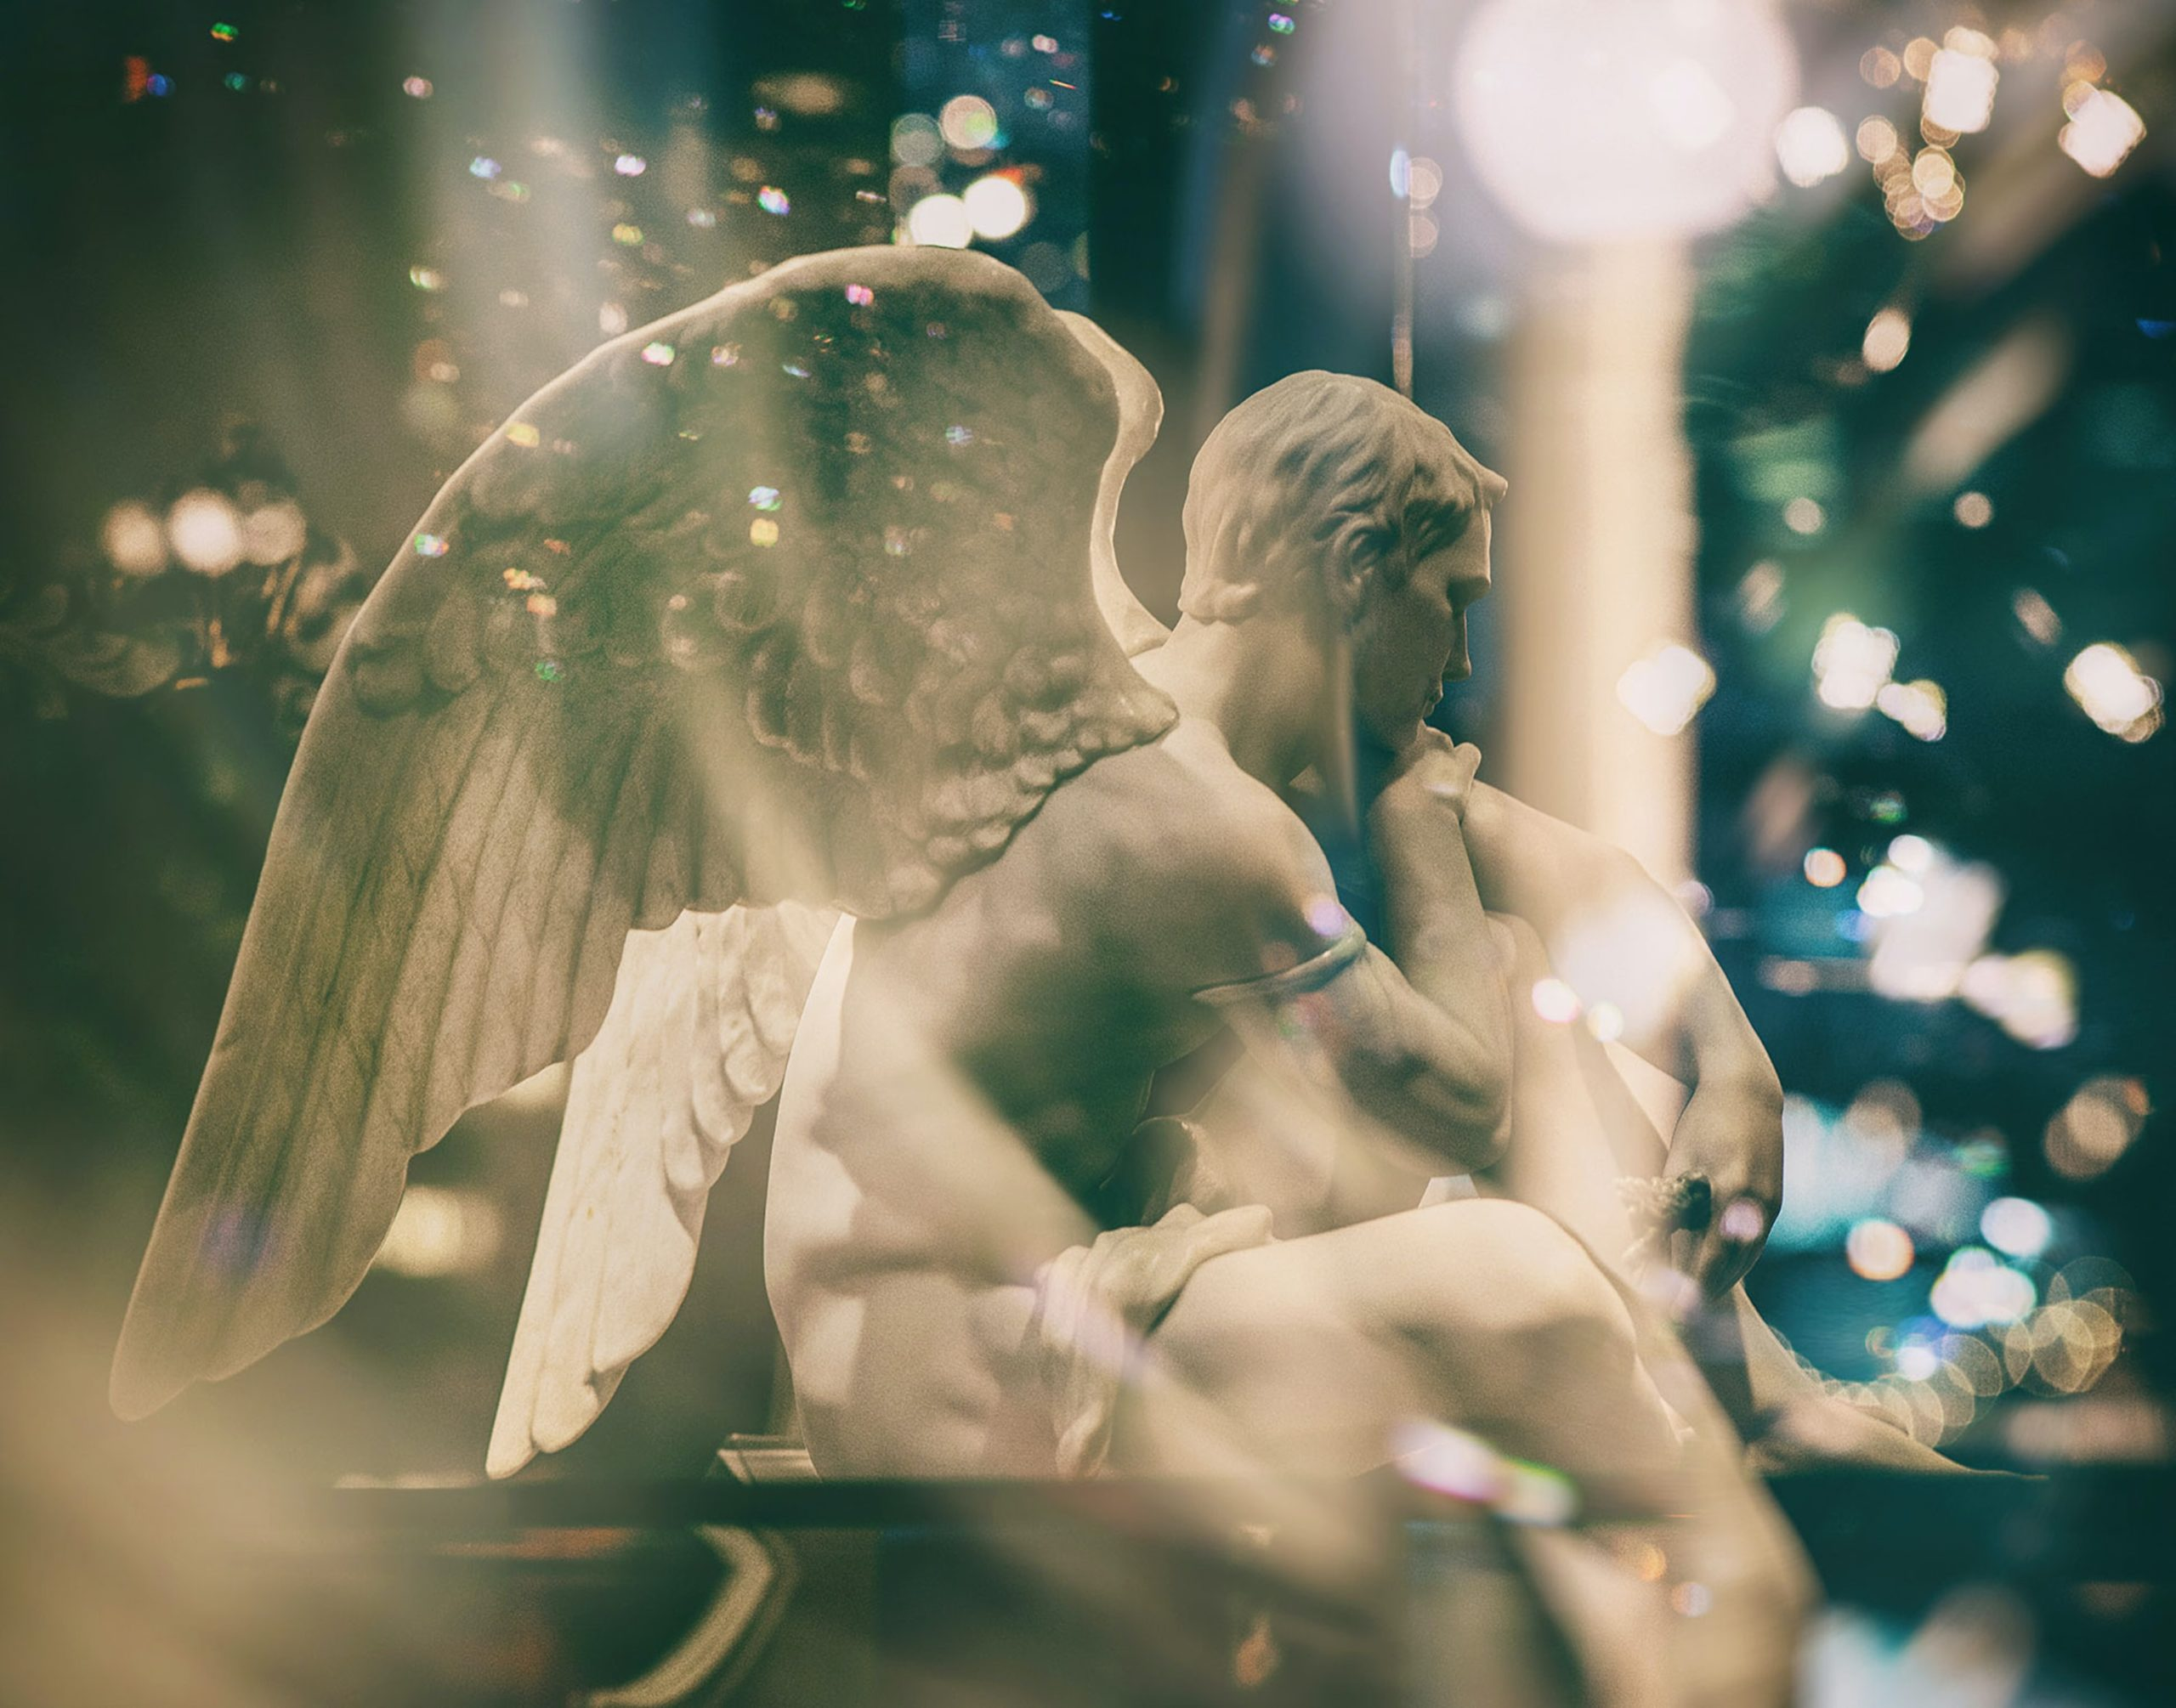 8 Subtle Warning Signs From Your Angels